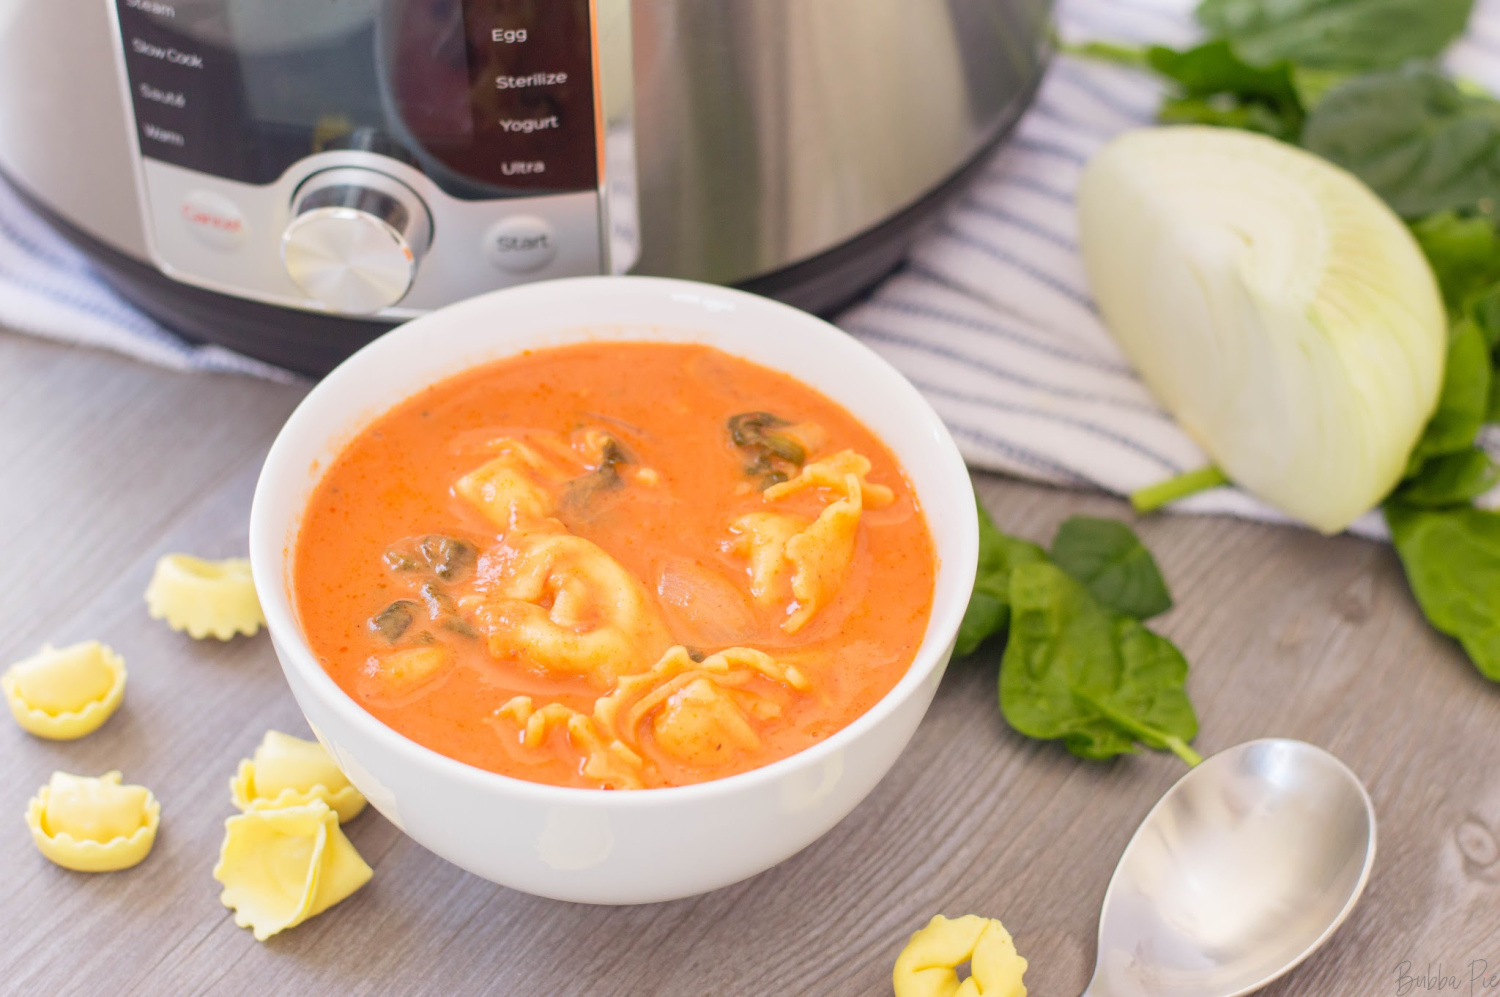 Instant pot tortellini Soup is a quick and easy dinner recipe all made in one pot.